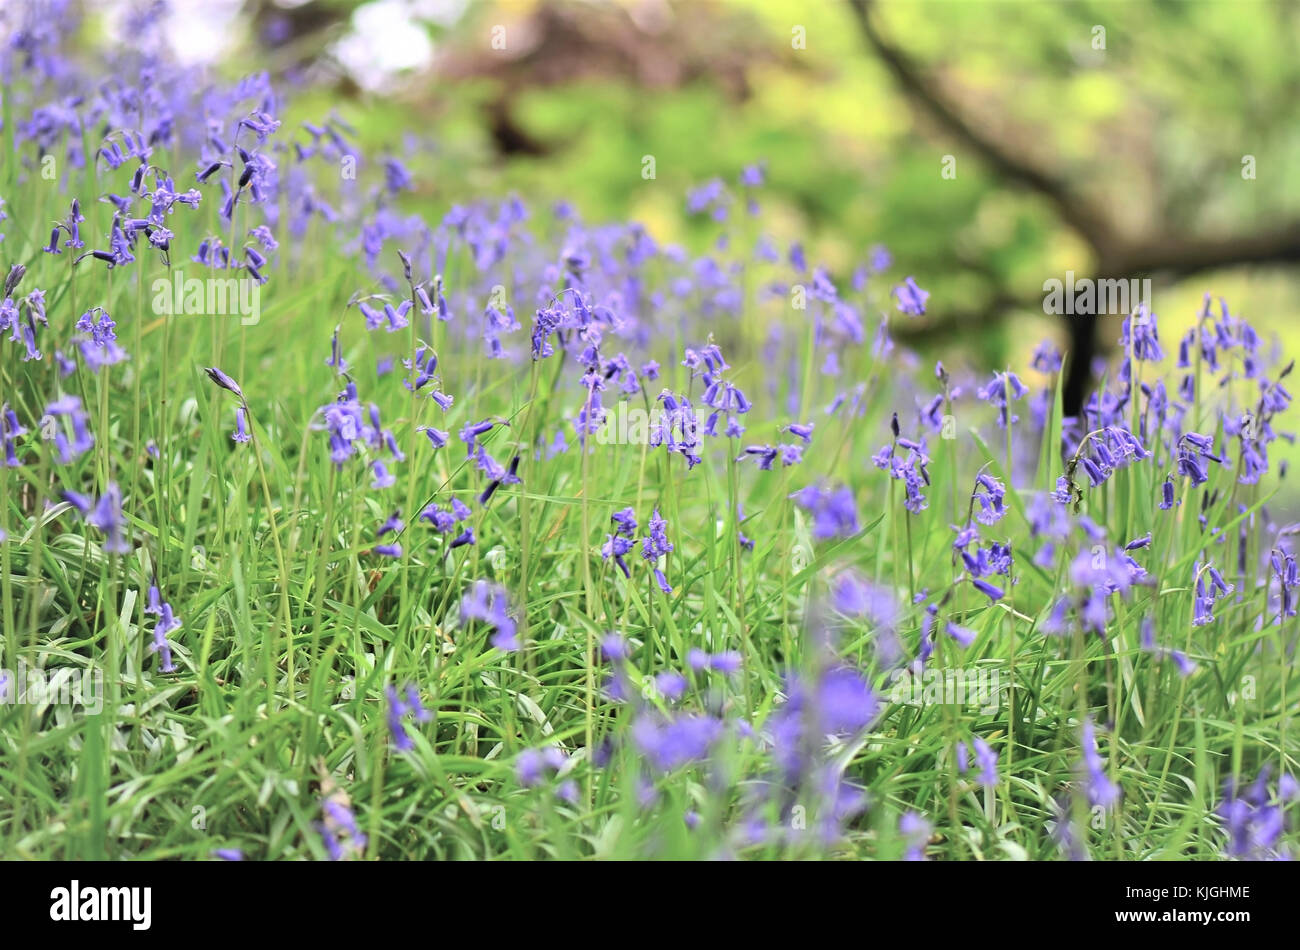 A Glorious Springtime Close-up of a Typical Woodland Carpet of Bluebells - Stock Image